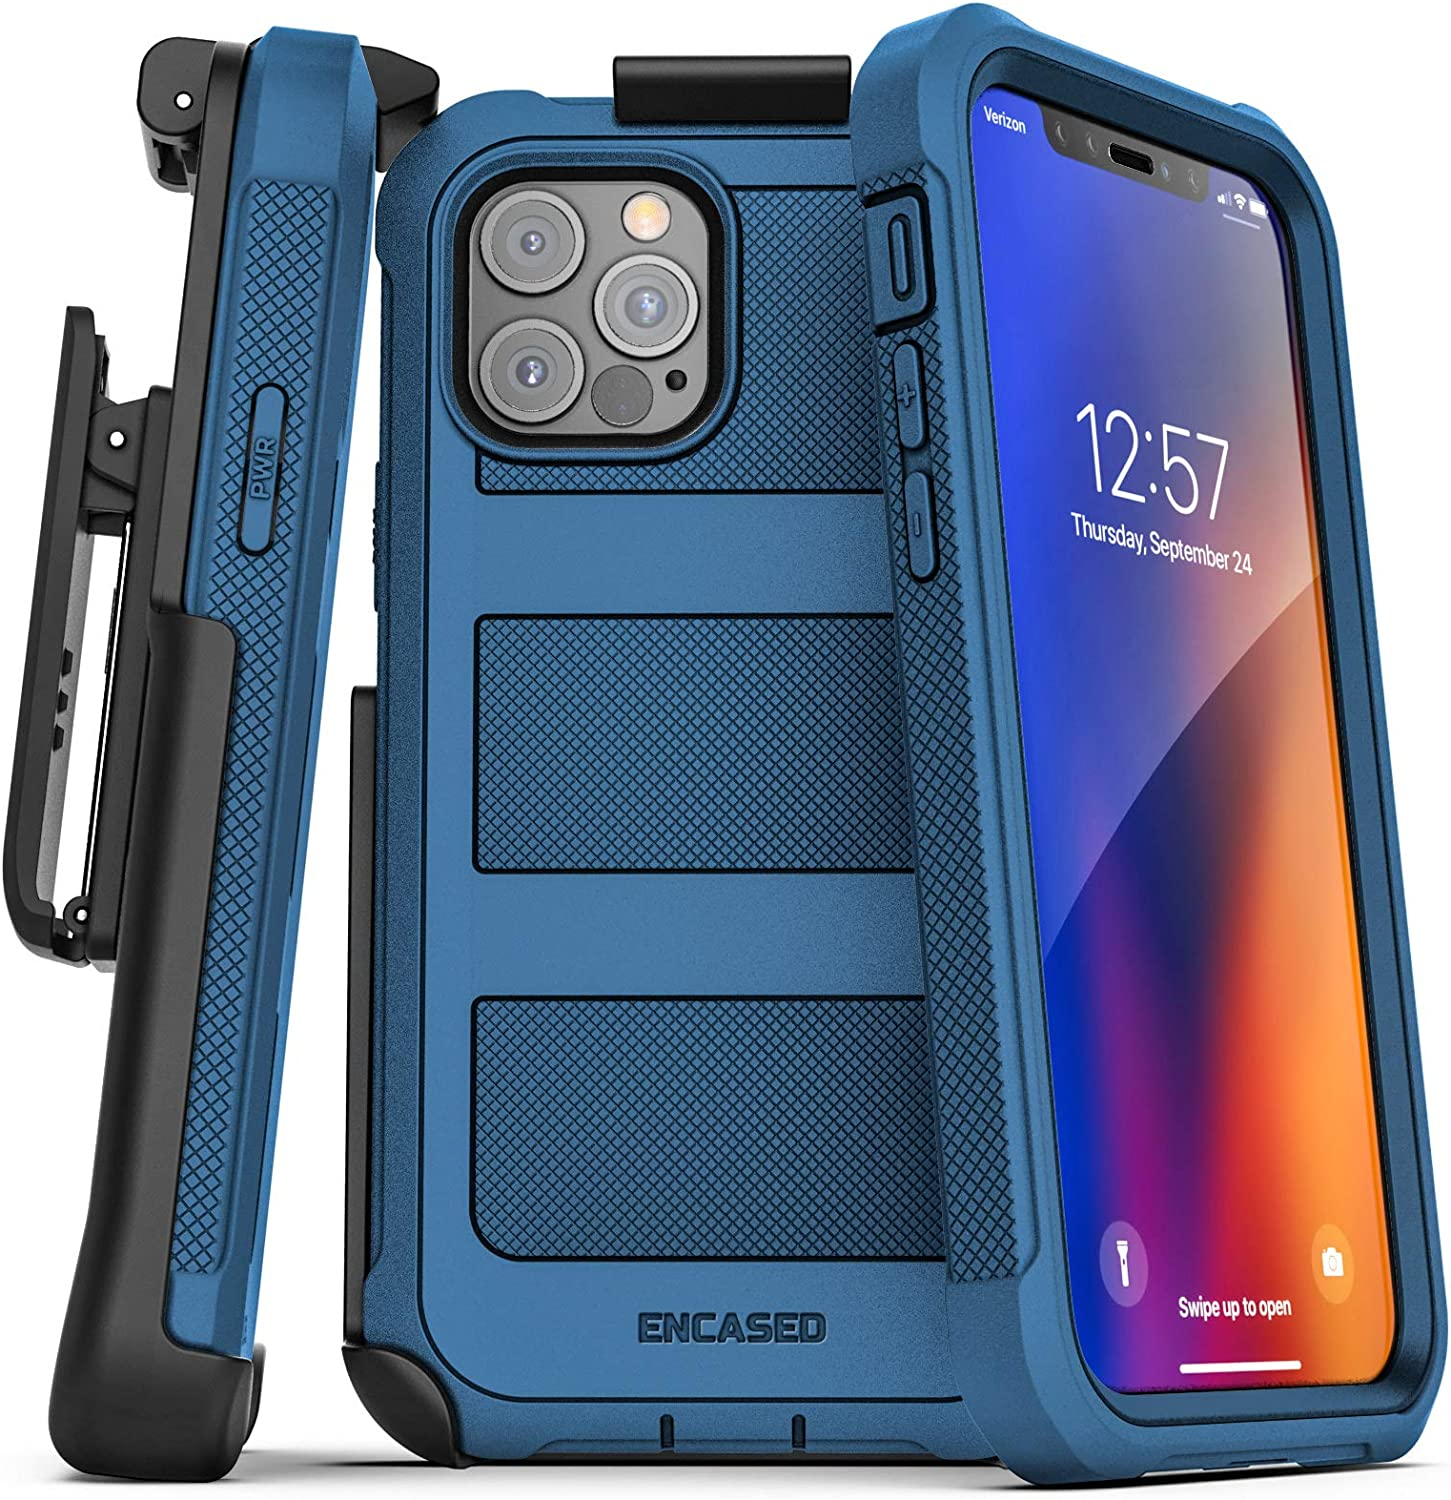 Encased Falcon Armor Compatible with iPhone 12 Pro Max Case with Screen Protector and Belt Clip Protective Full Body Cover with Built-in Screen Guard and Holster - Blue